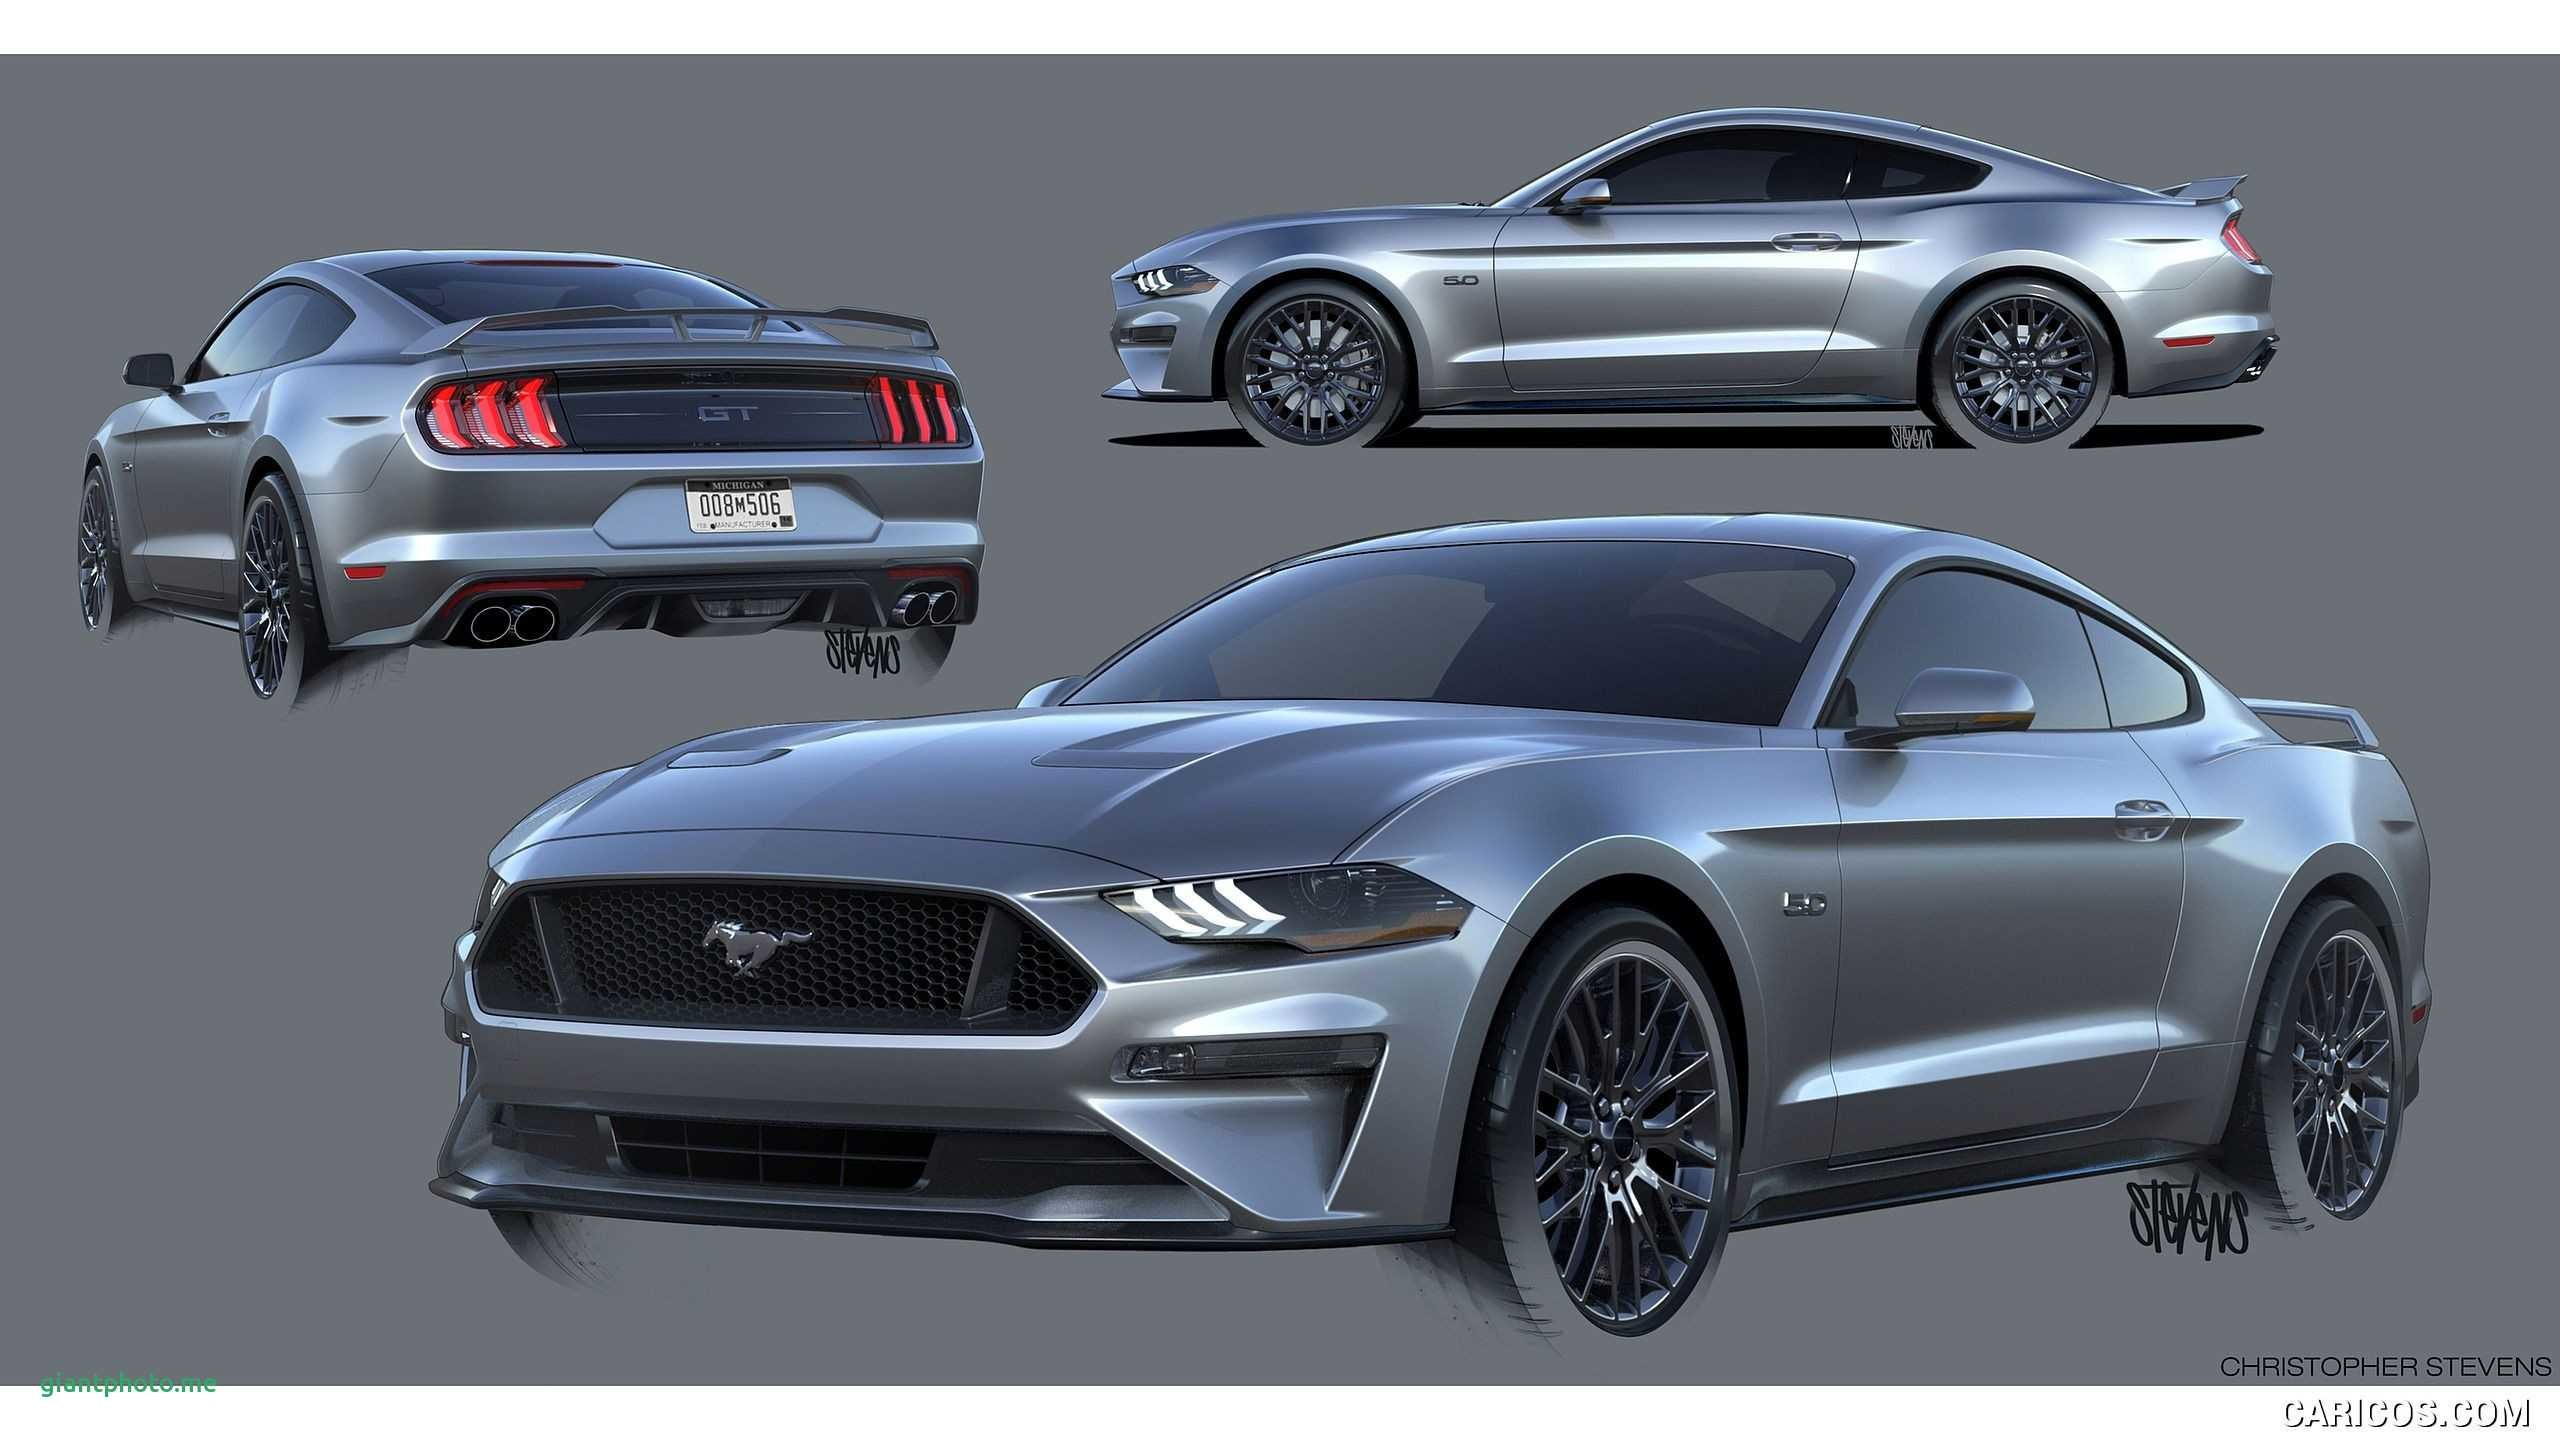 2560x1440 Mustang Car Hd Wallpaper New Mustang Wallpaper Elegant Car Image with Black  Background Best Black